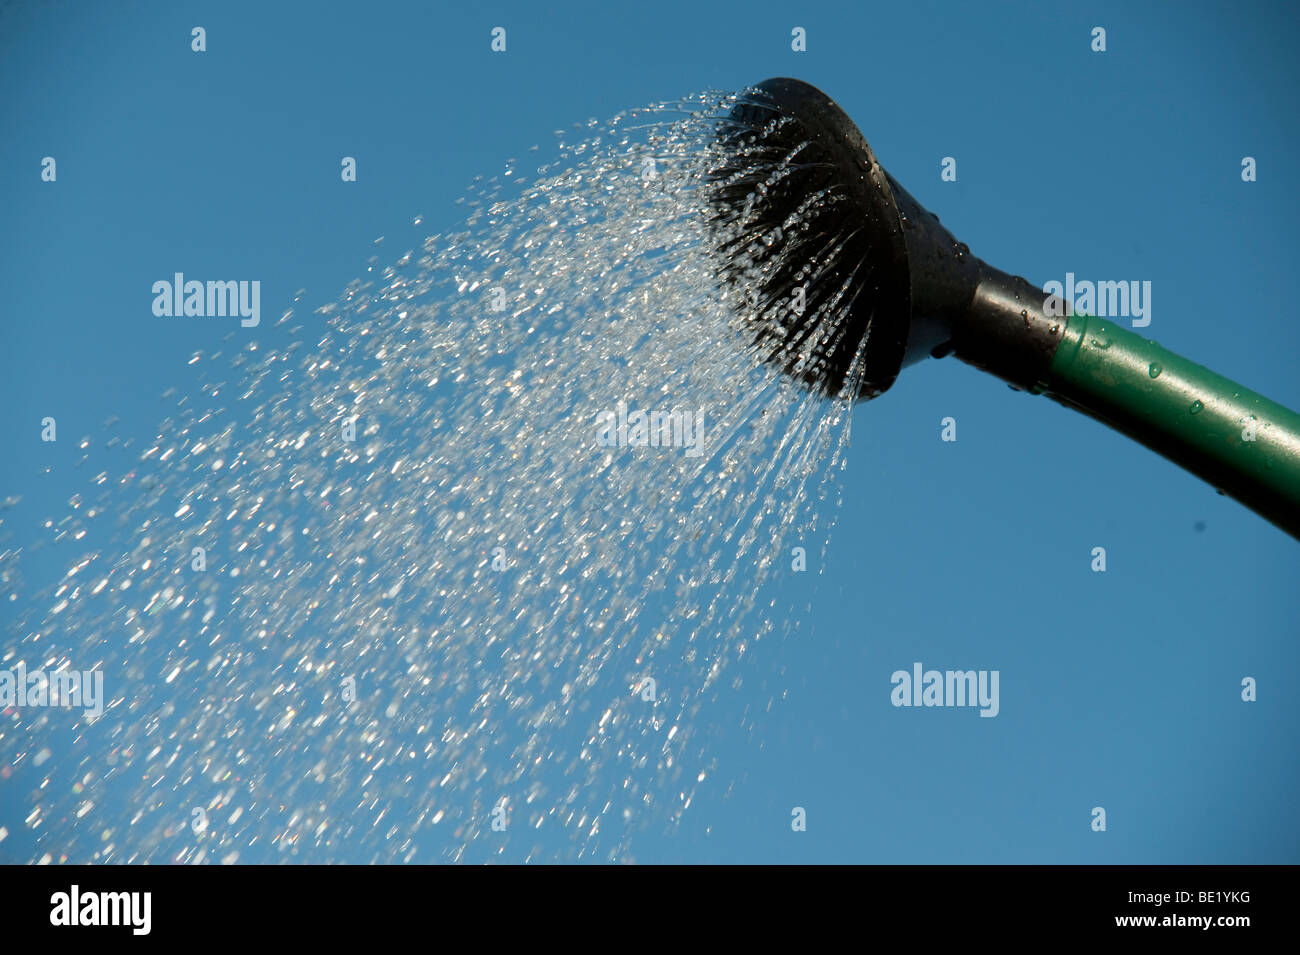 Water pouring from watering can spout against blue sky background sprinkling gardening tool - Stock Image